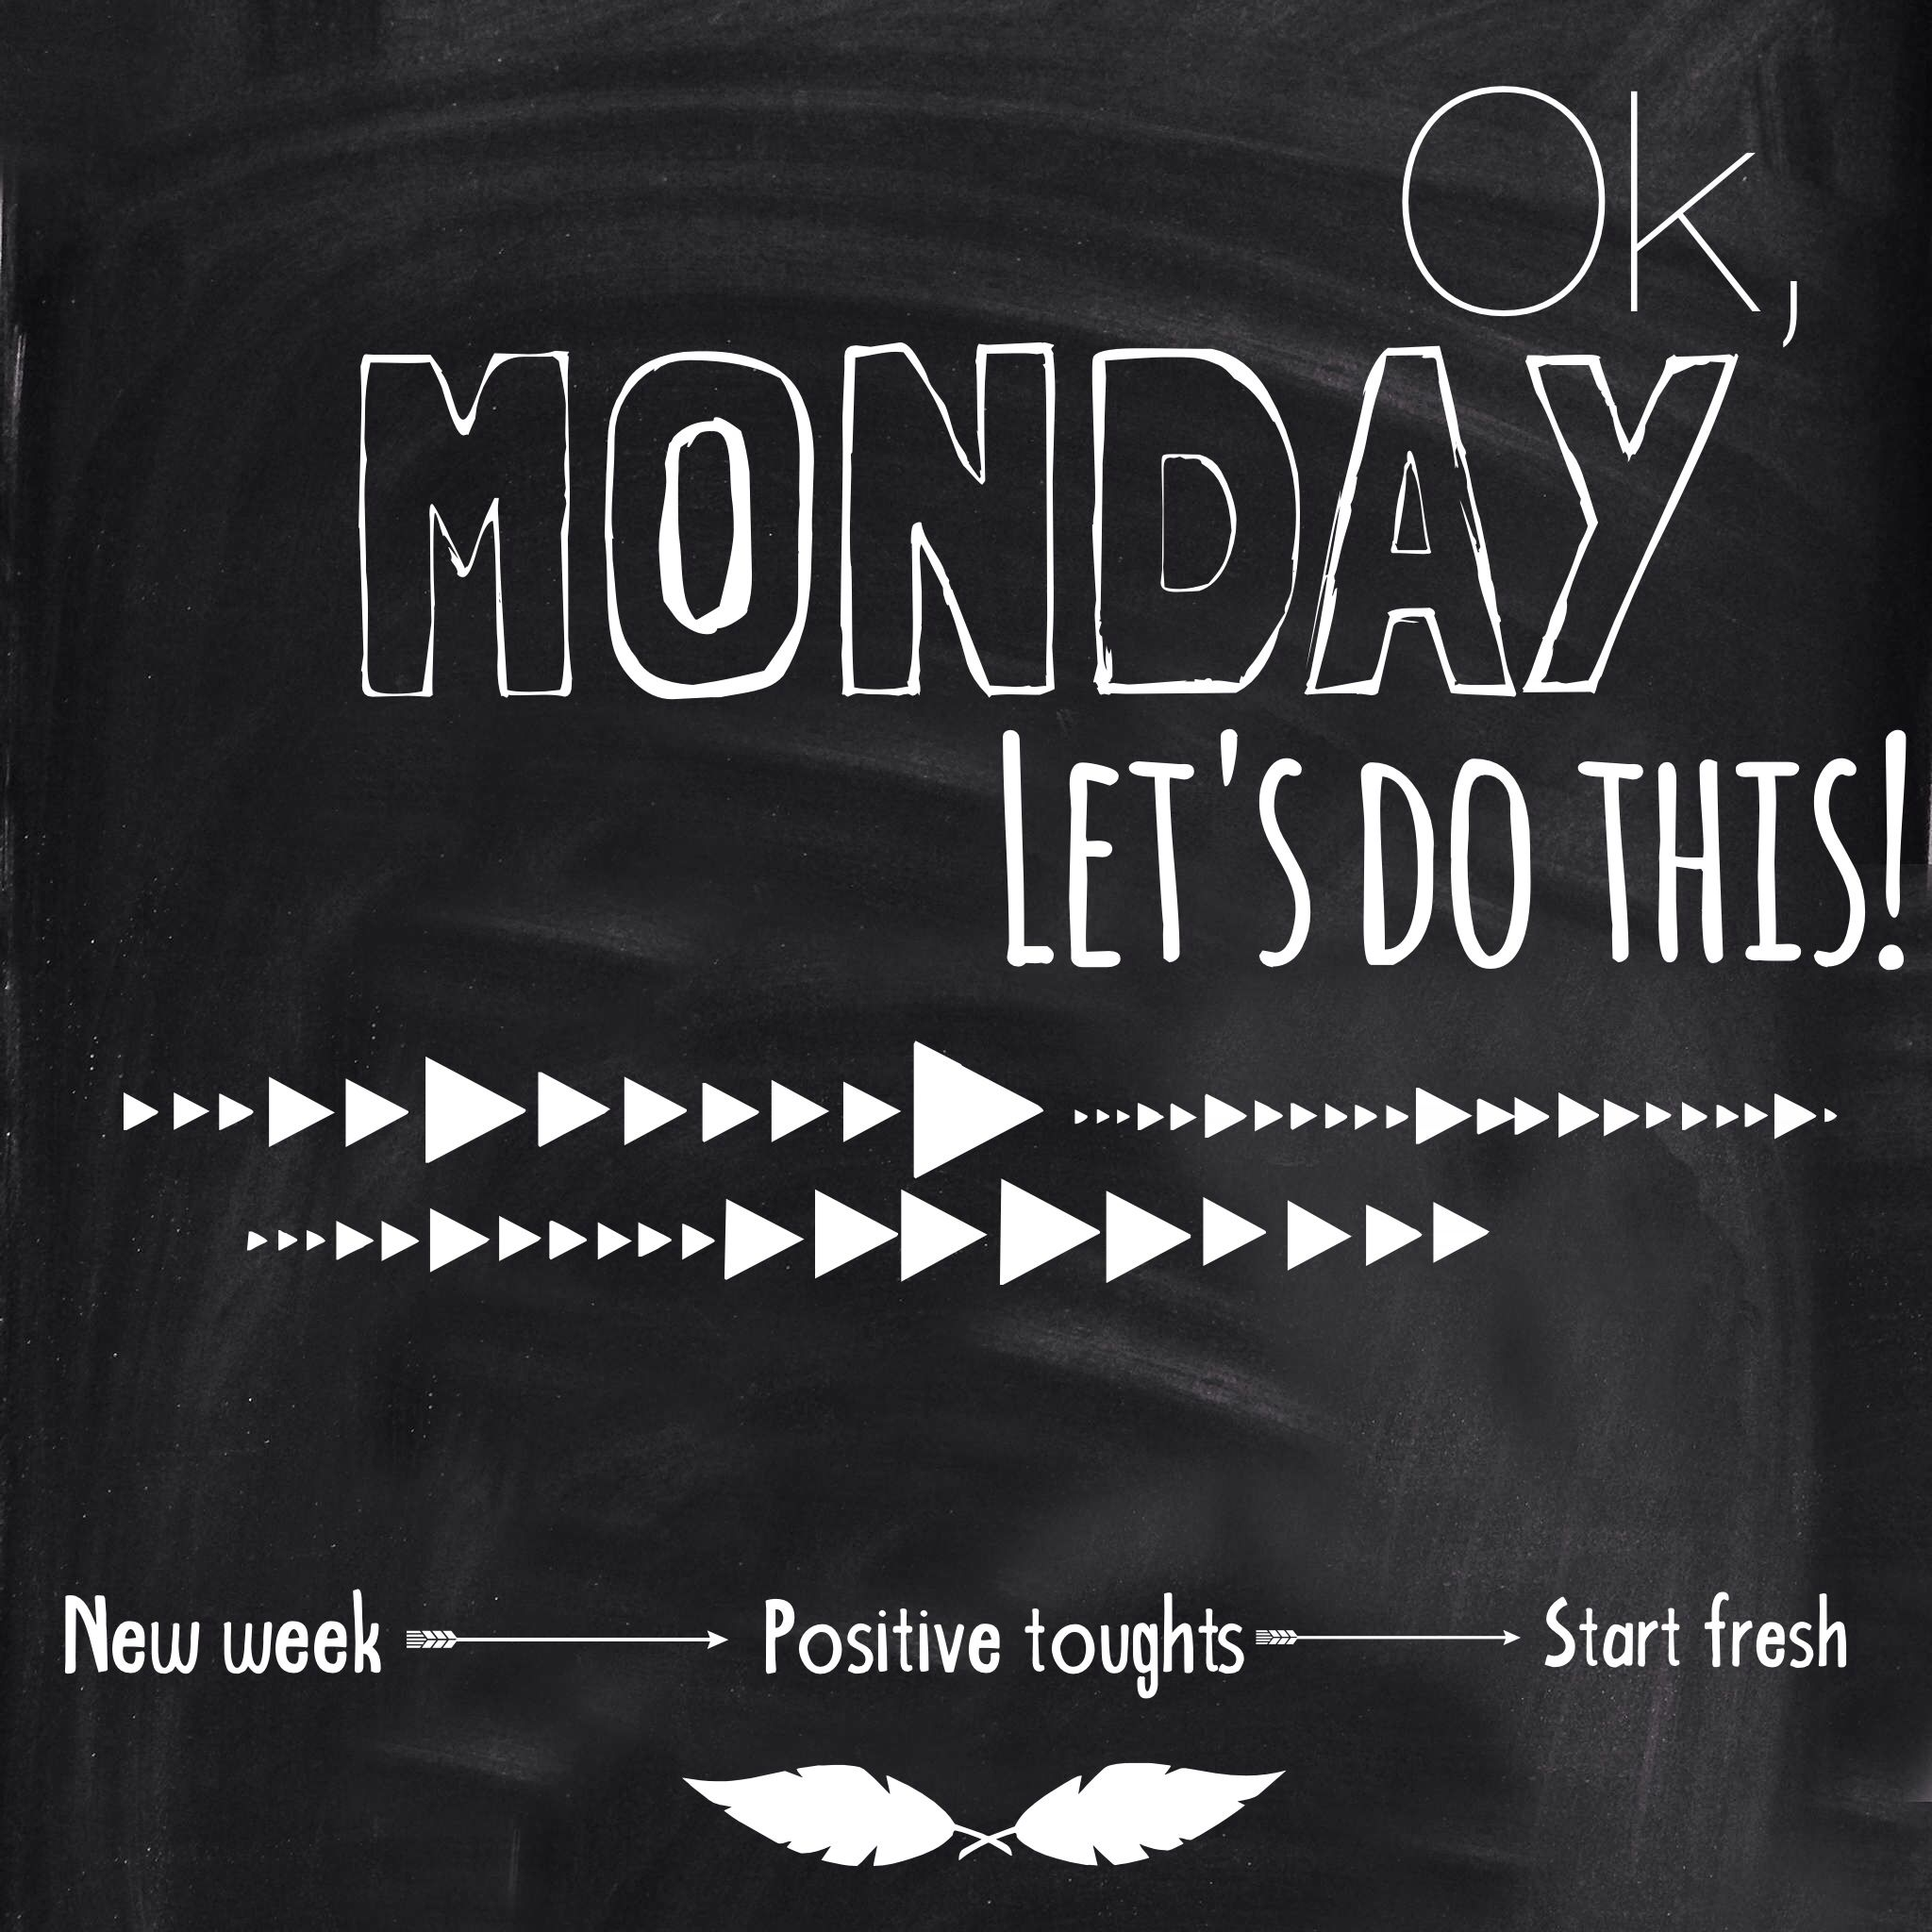 Week Quotes Endearing Quote Ok Monday Let's Do This New Week Positive Thou